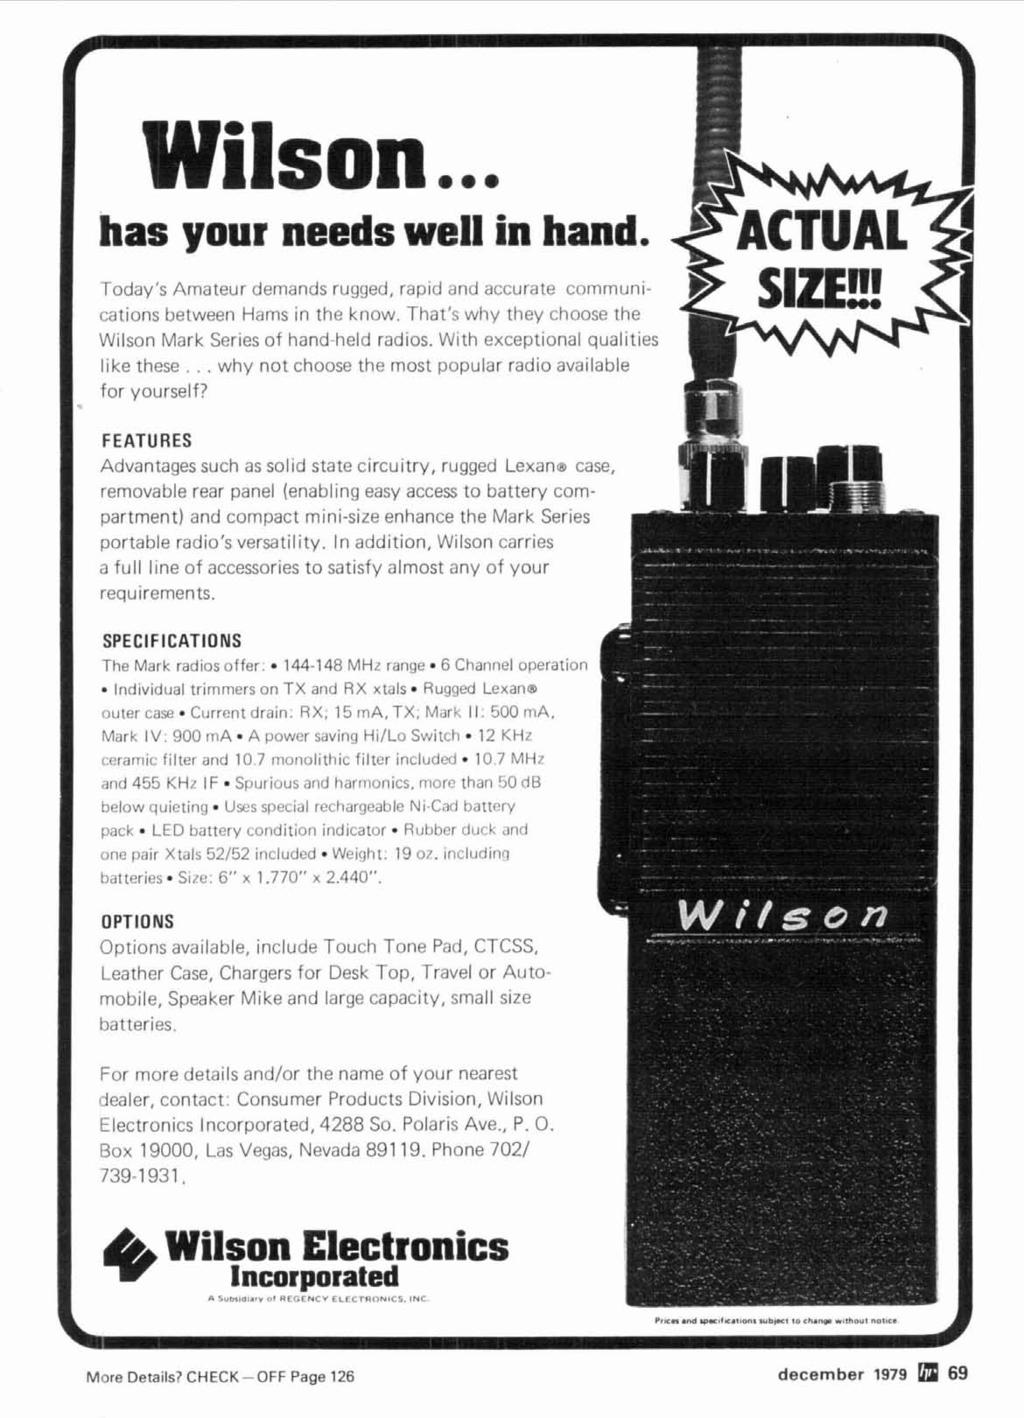 Wilson... has your needs well in hand. Today's Amateur demands rugged, rap~d and accurate communications between Hams in the know. That's why they choose the Wilson Mark Series of hand-held radios.